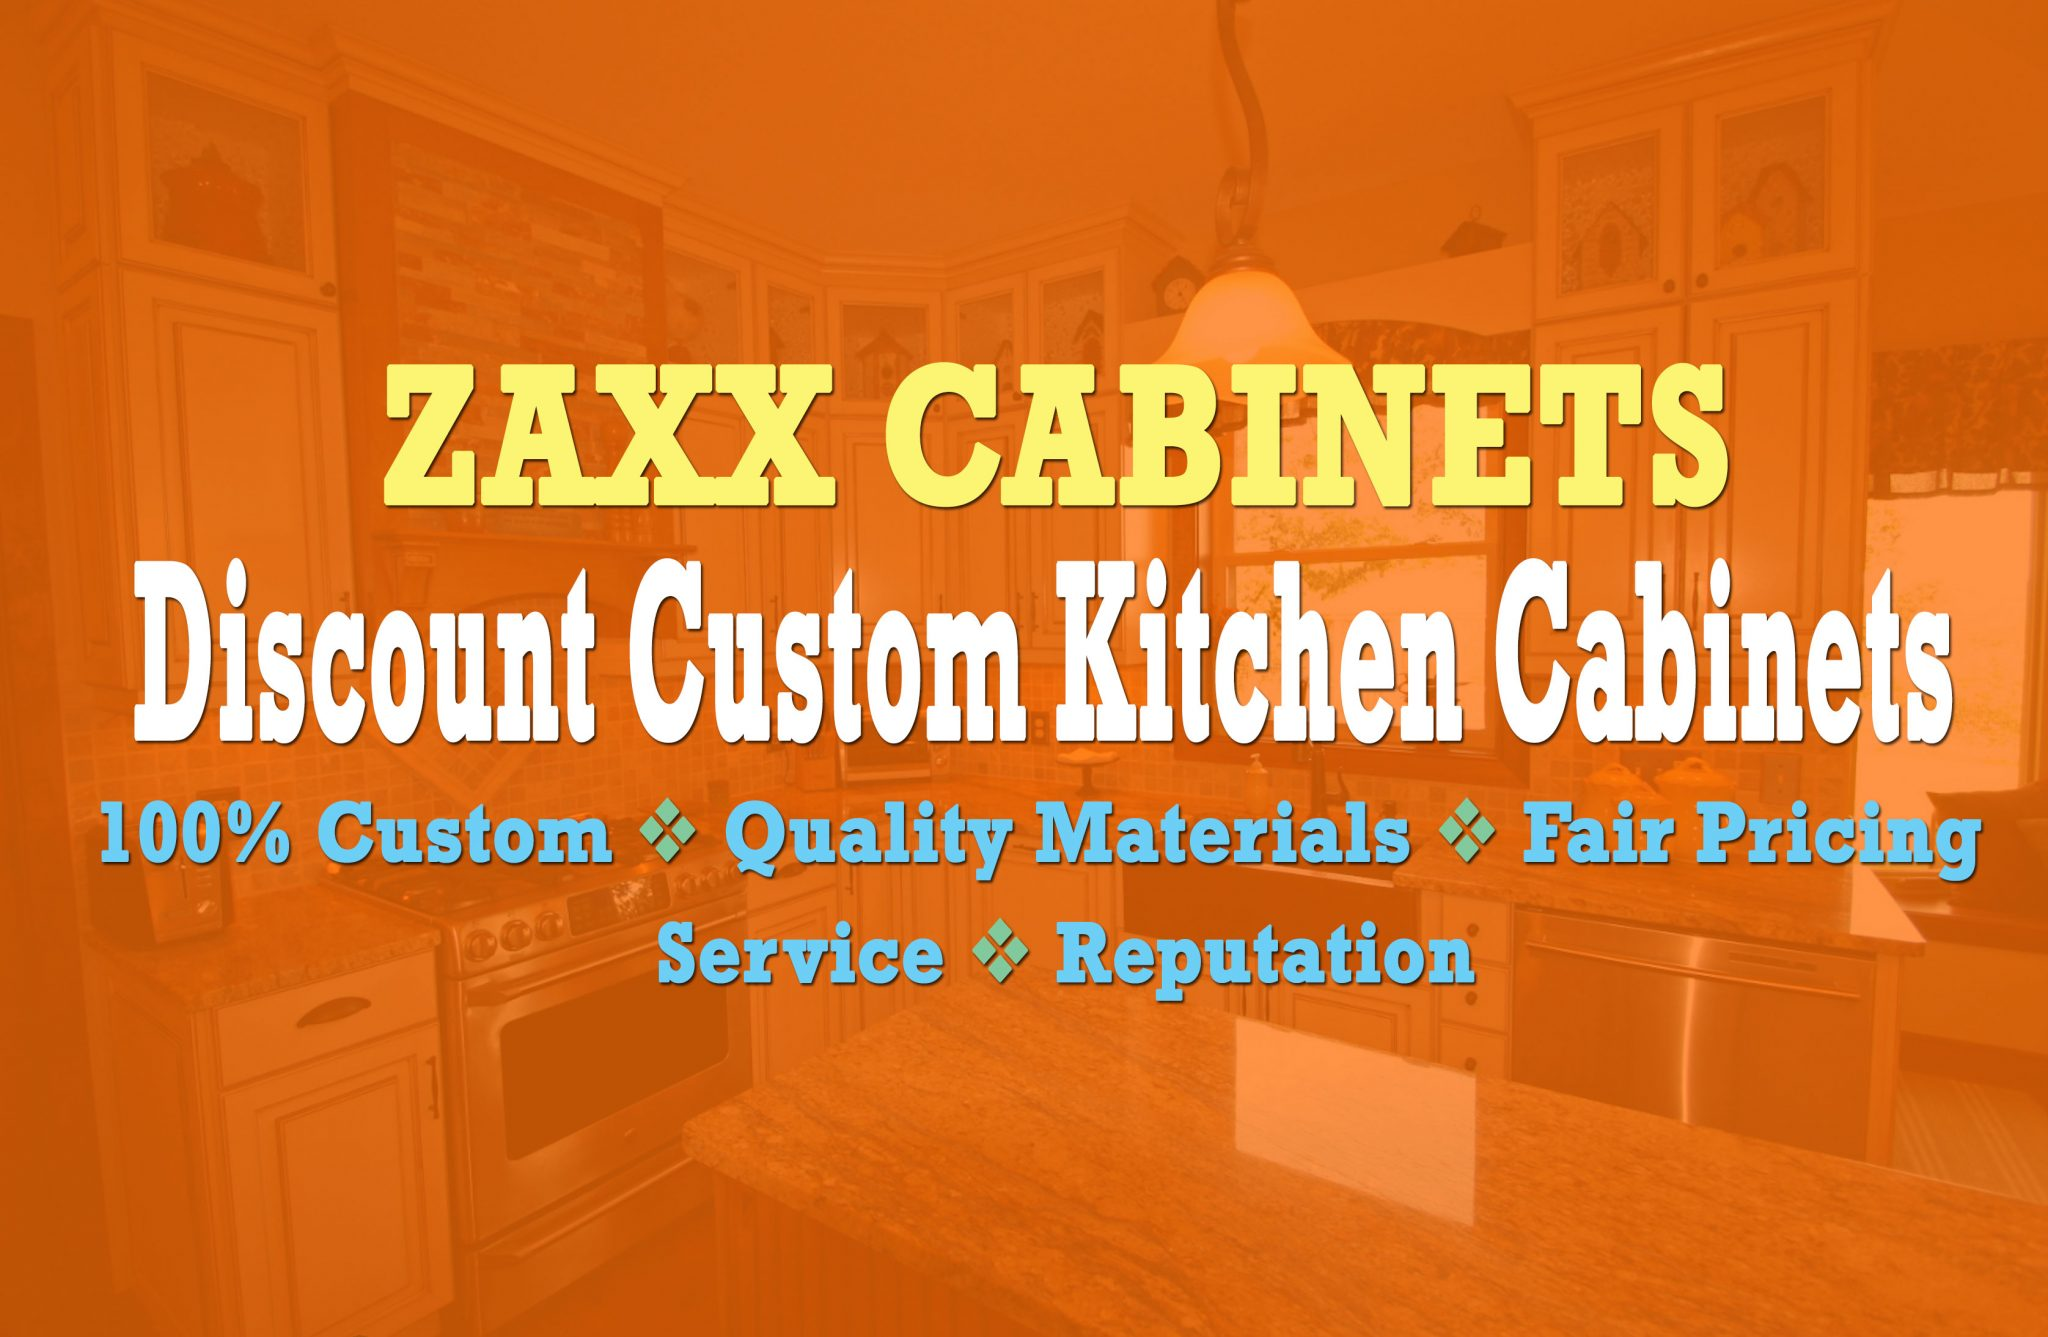 Terrific Kitchen Cabinet Selection In Minnesota And Wisconsin Zaxx Download Free Architecture Designs Embacsunscenecom